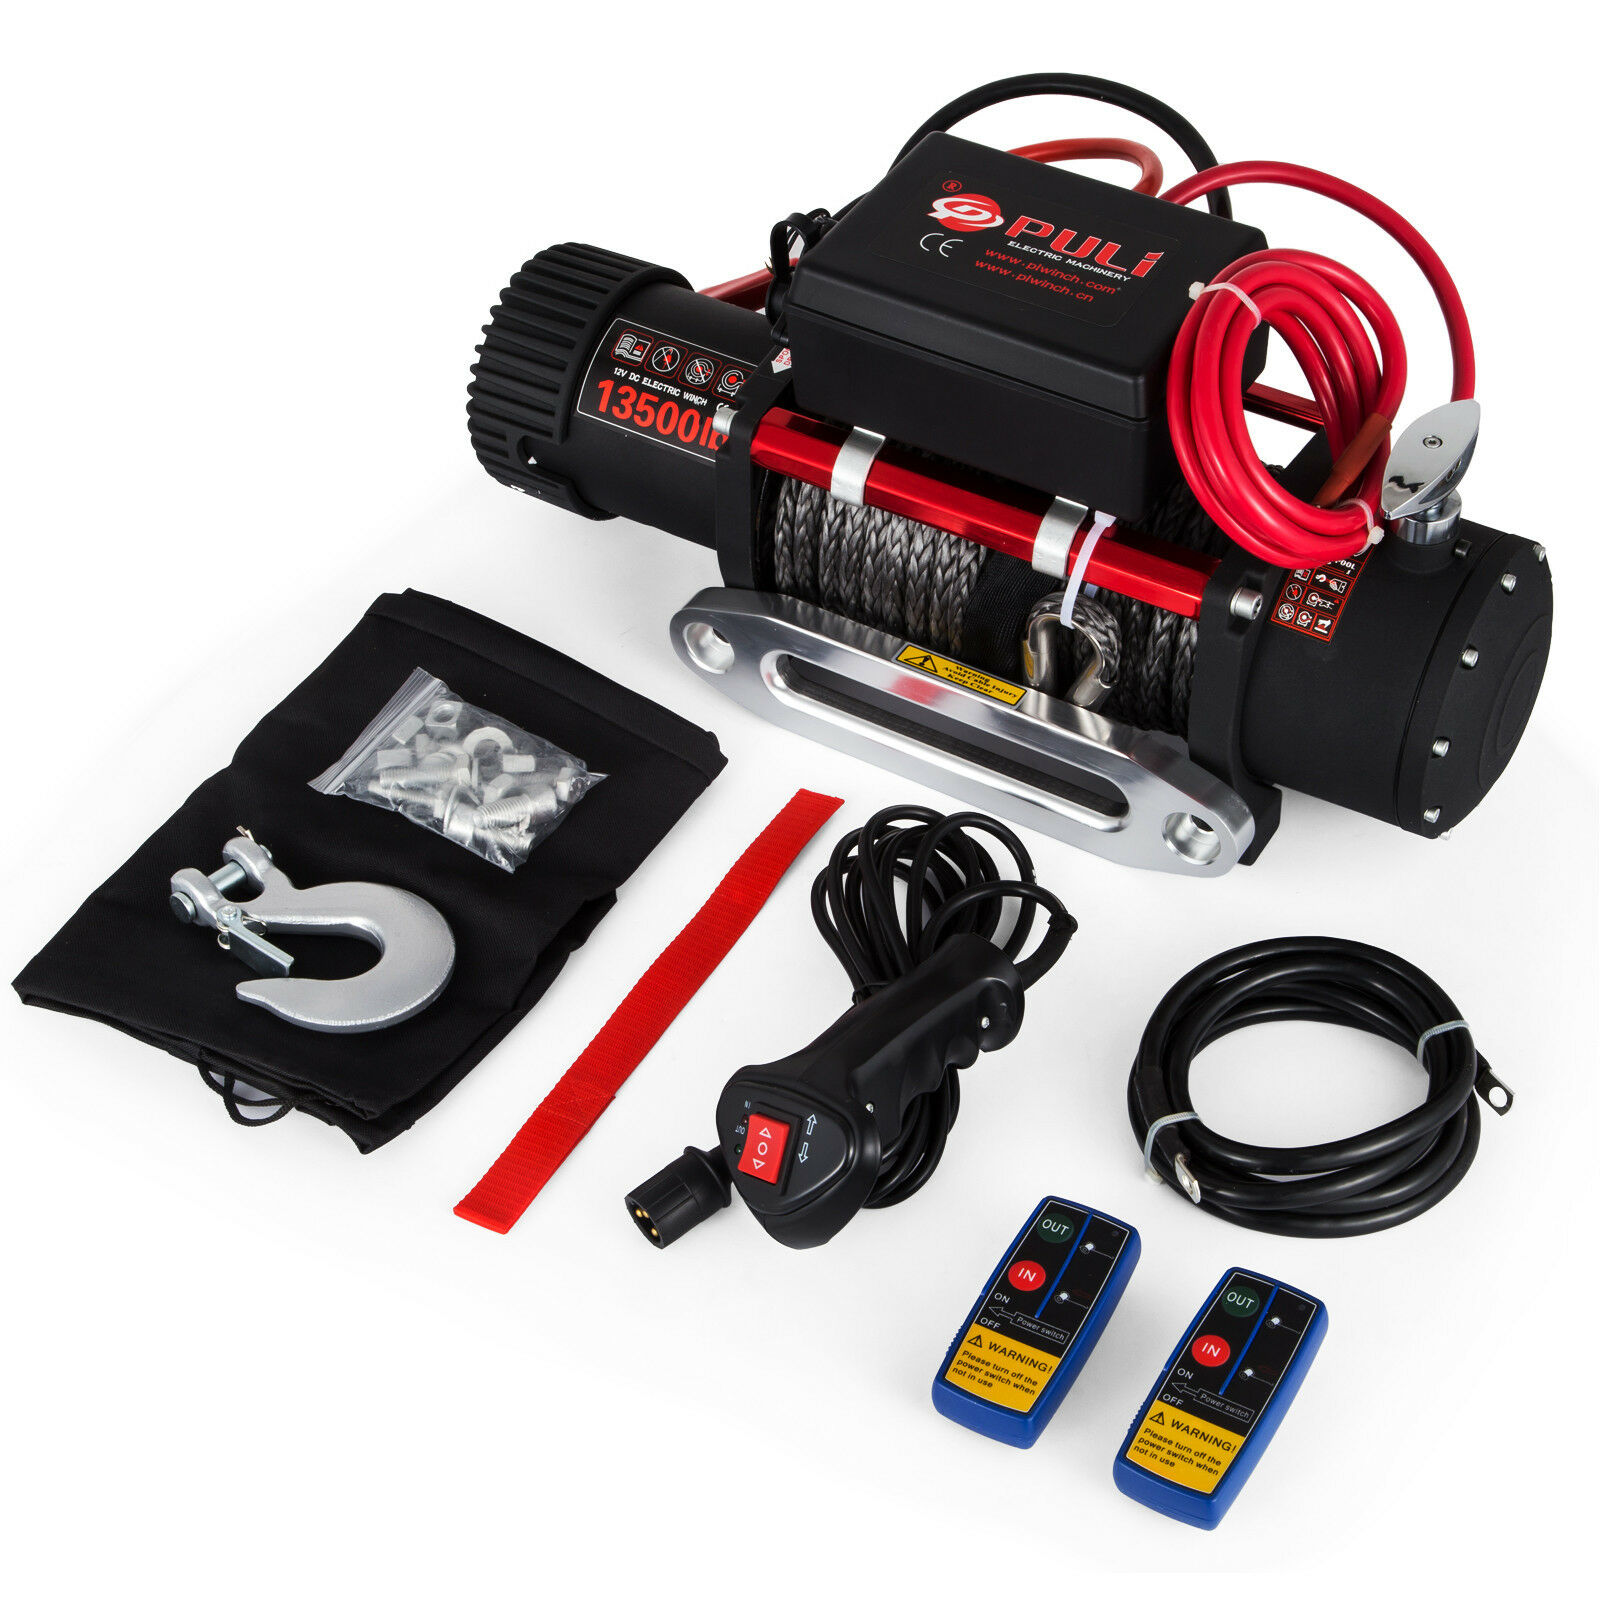 Free shipping for EU 13500LBS 12V Electric Synthetic Rope Winch Recovery Remote Control